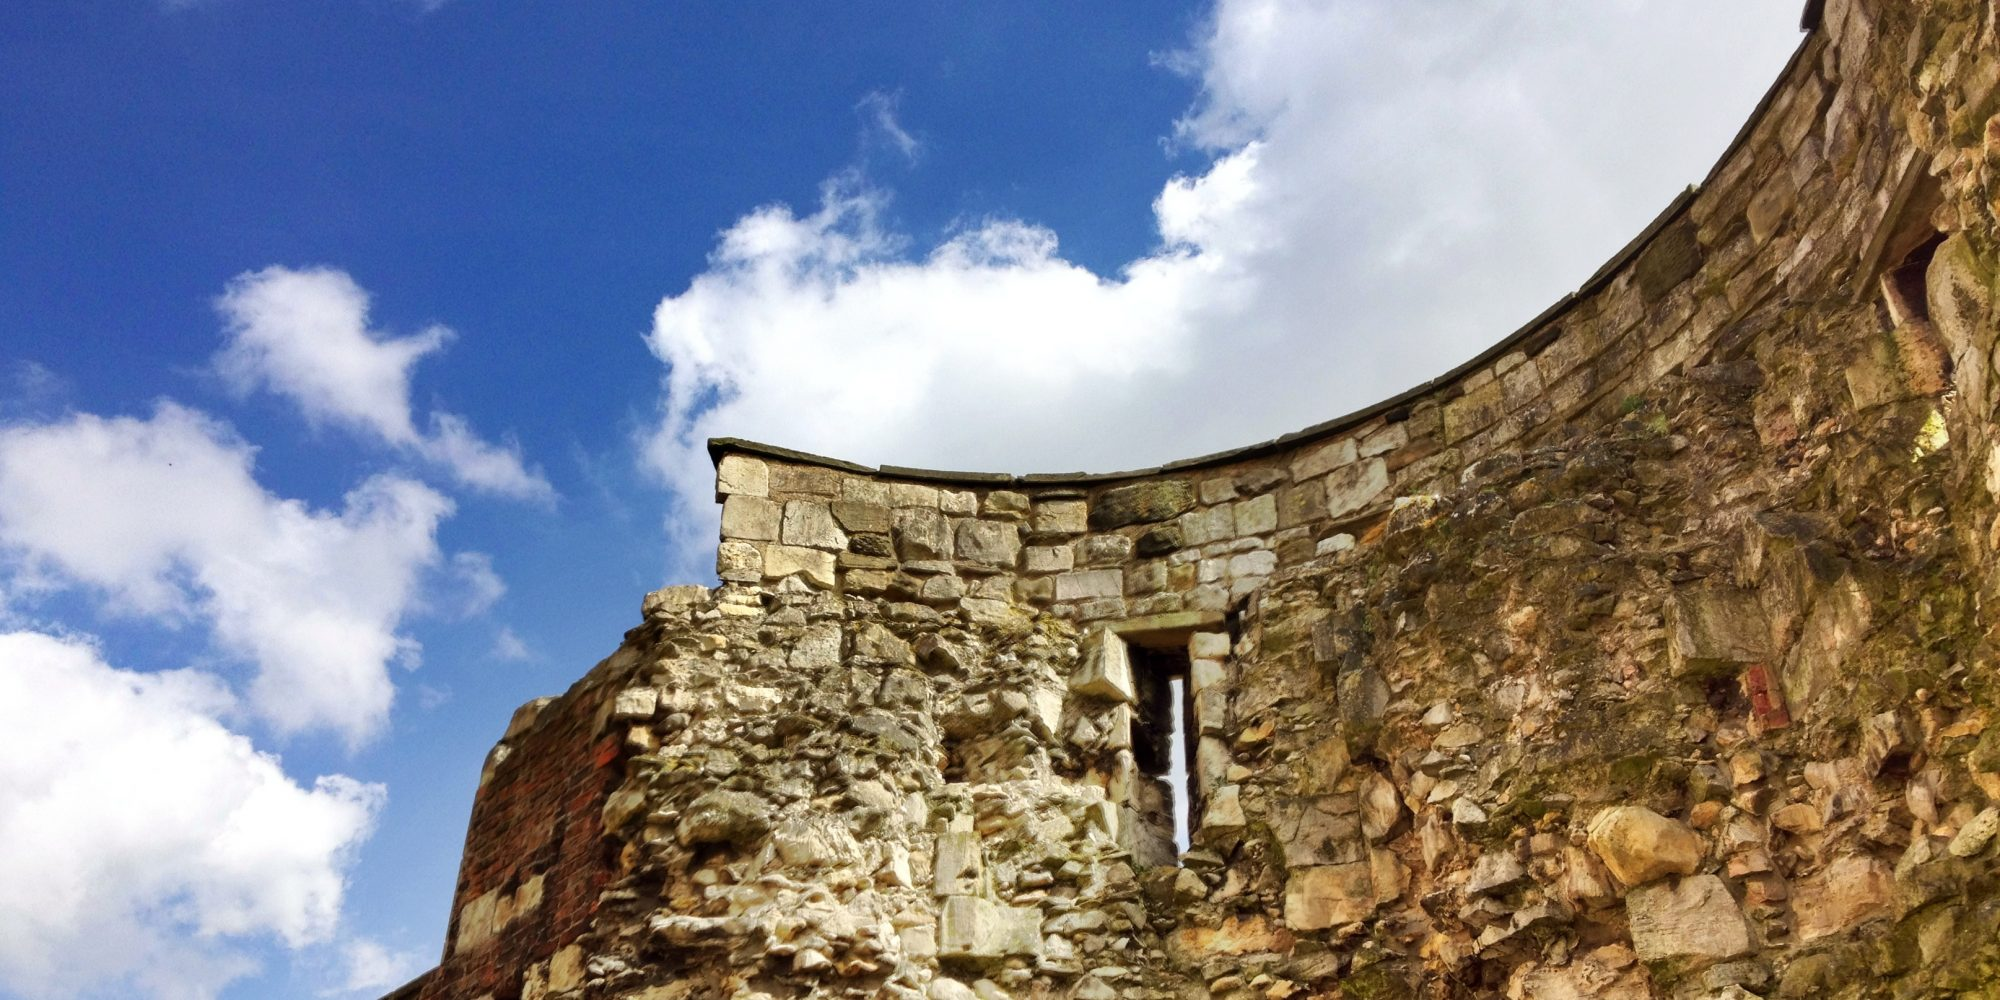 Details of historical stone built wall. Developing a new place brand for the City of York.